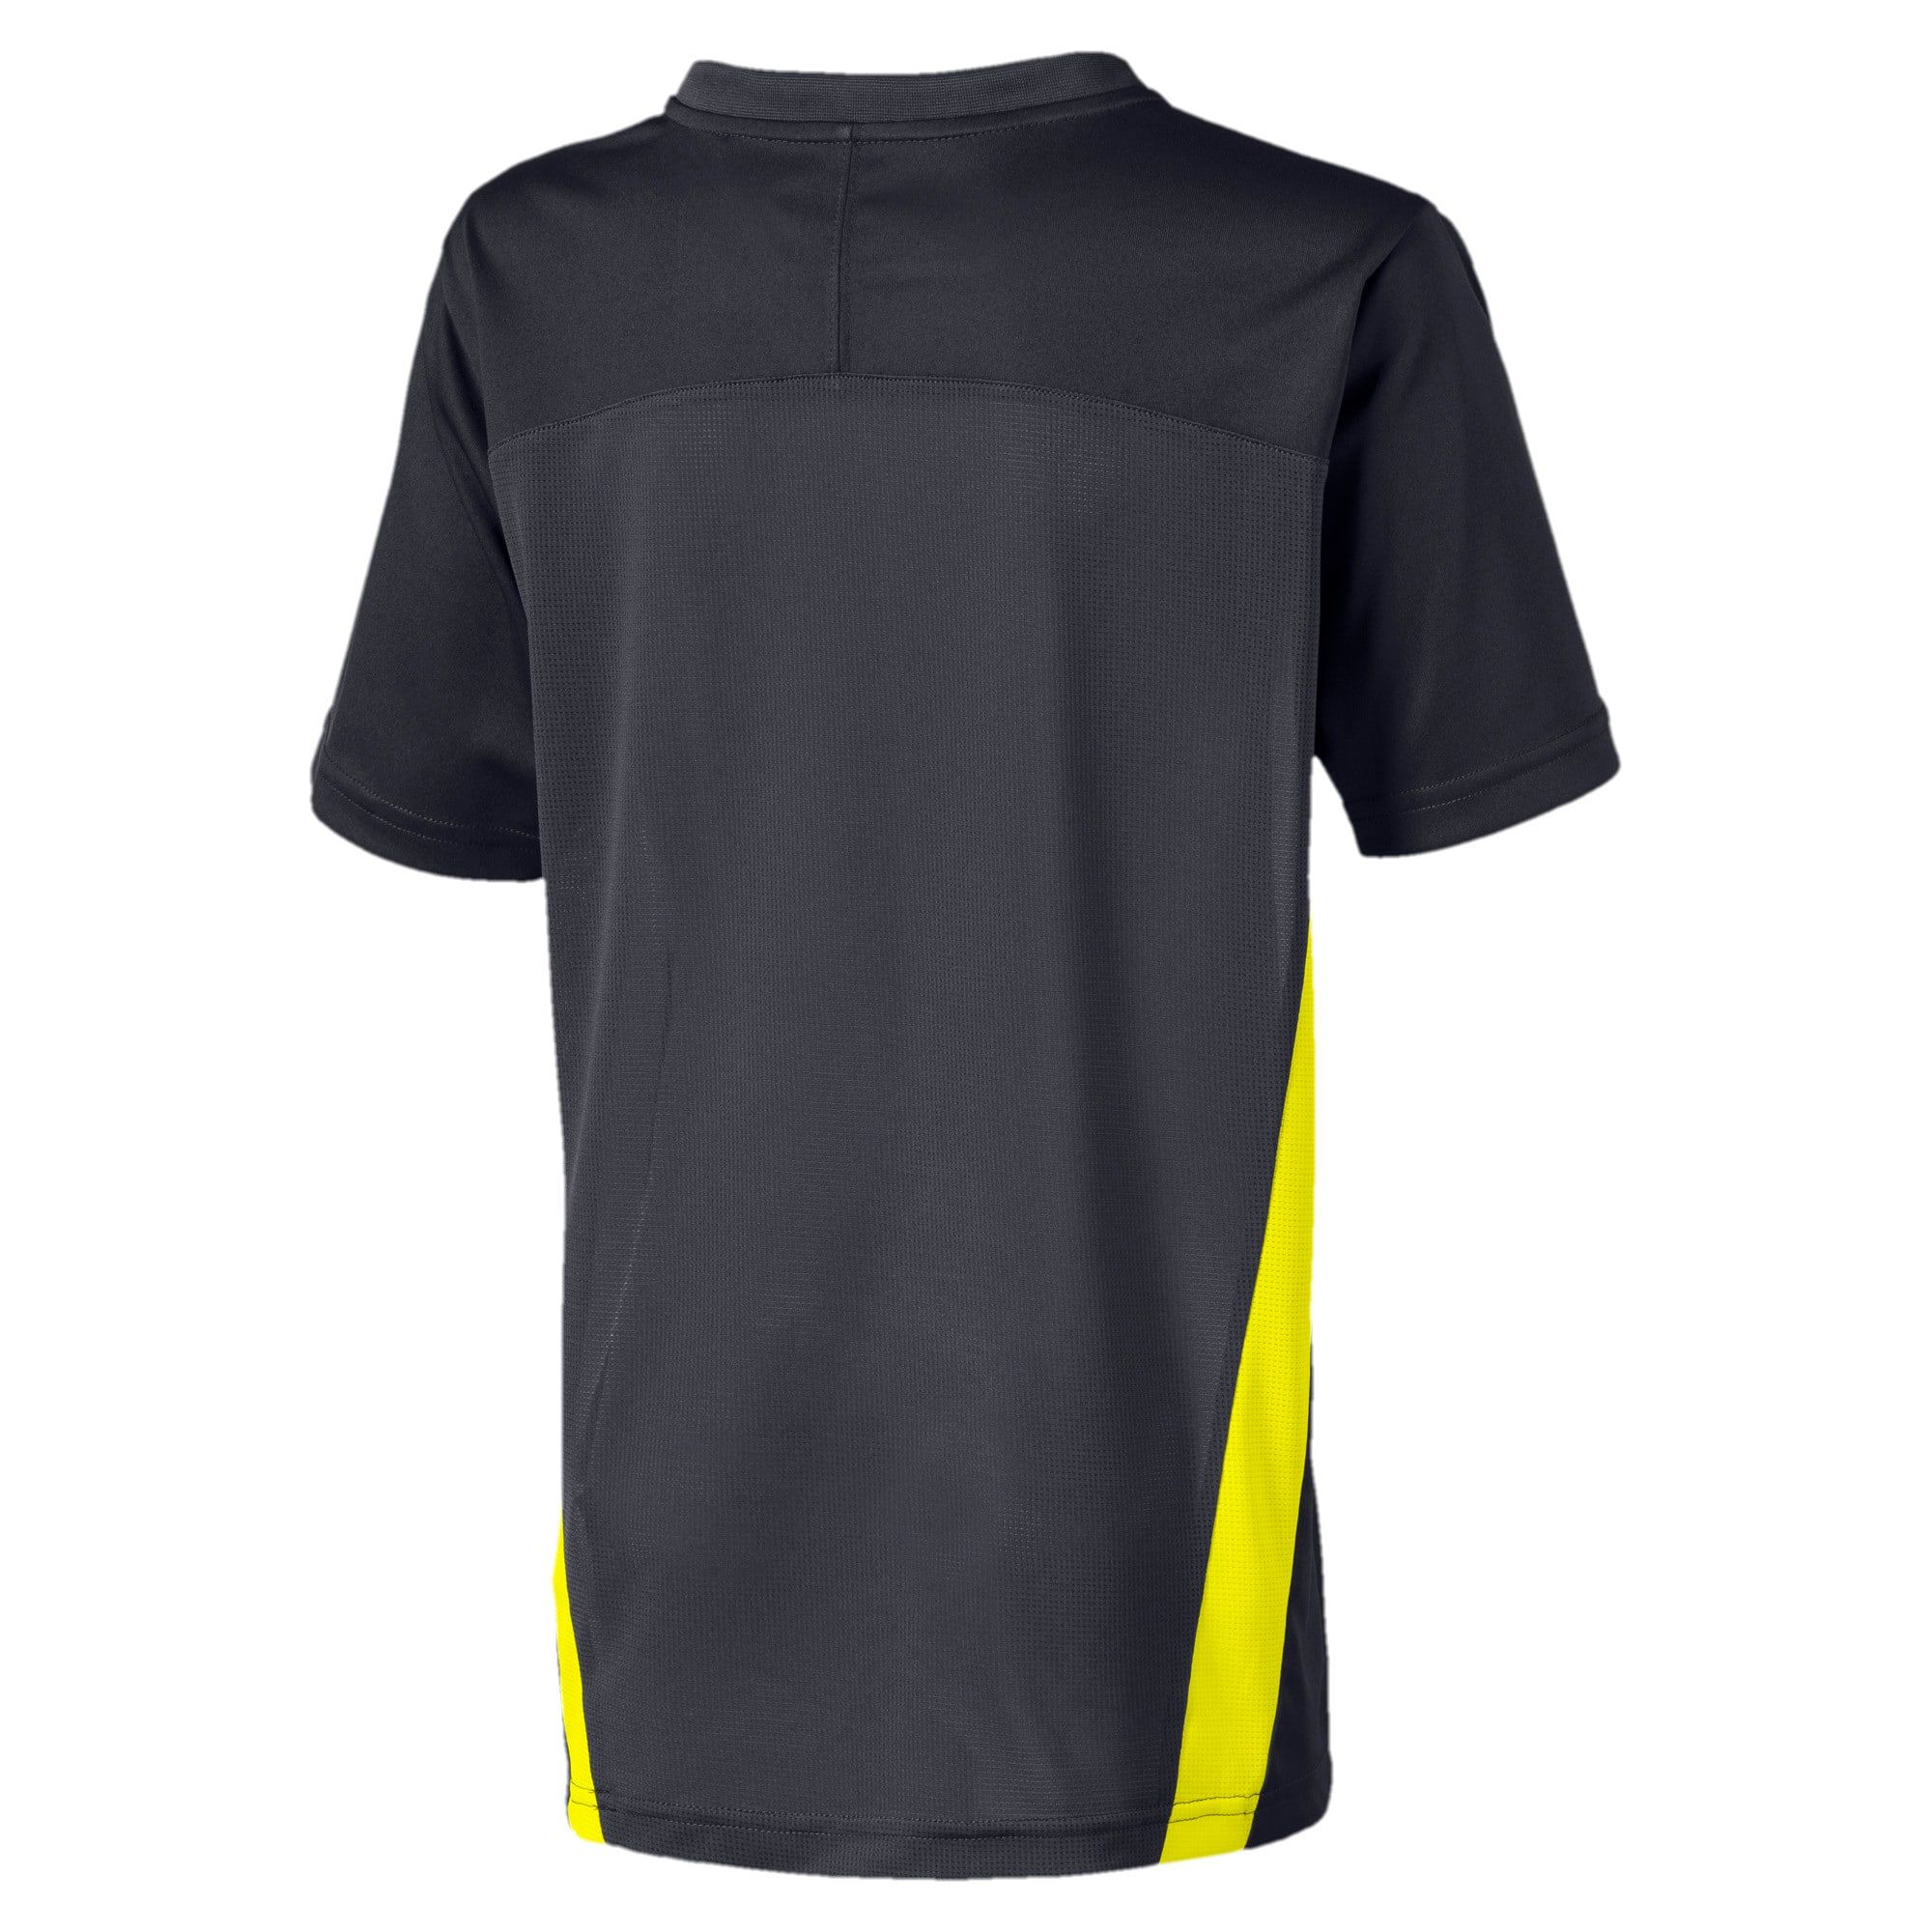 Men's PUMA Football NXT Boys' Training T-Shirt in Ebony/Yellow Alert size 12-18 Months #teedesign